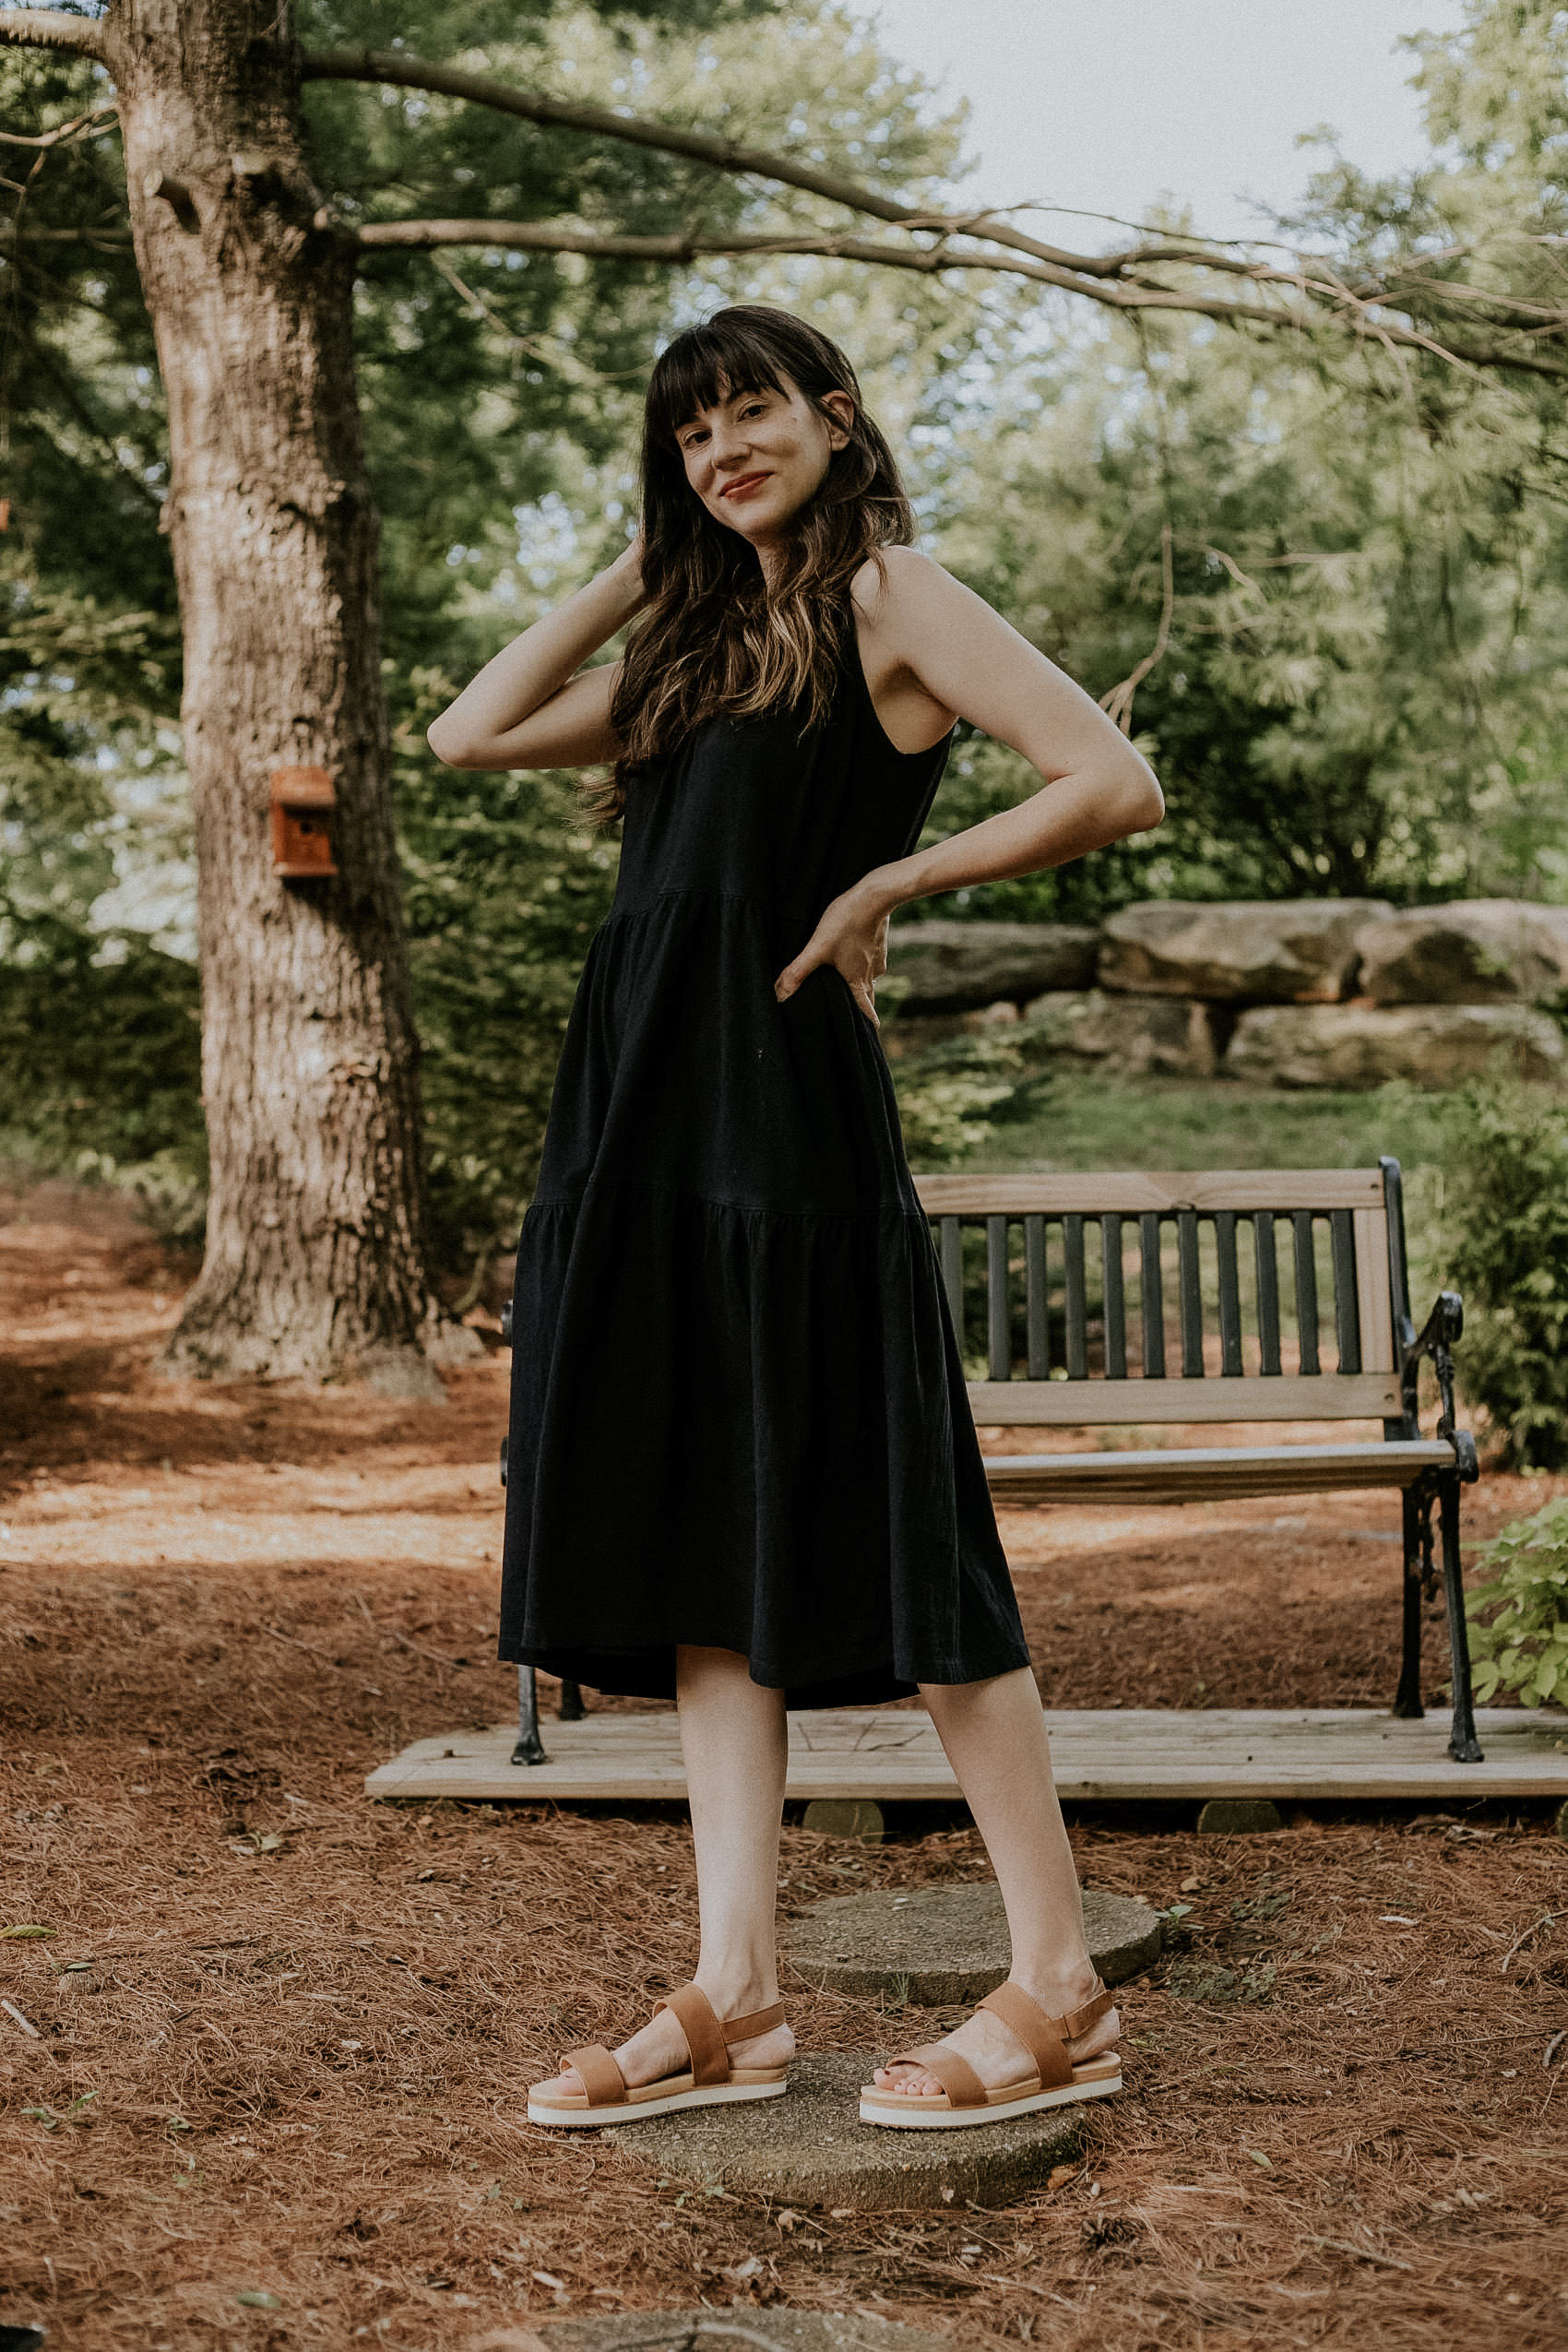 Nisolo go-to flatform sandals with Everlane black tank dress on woman standing near bench